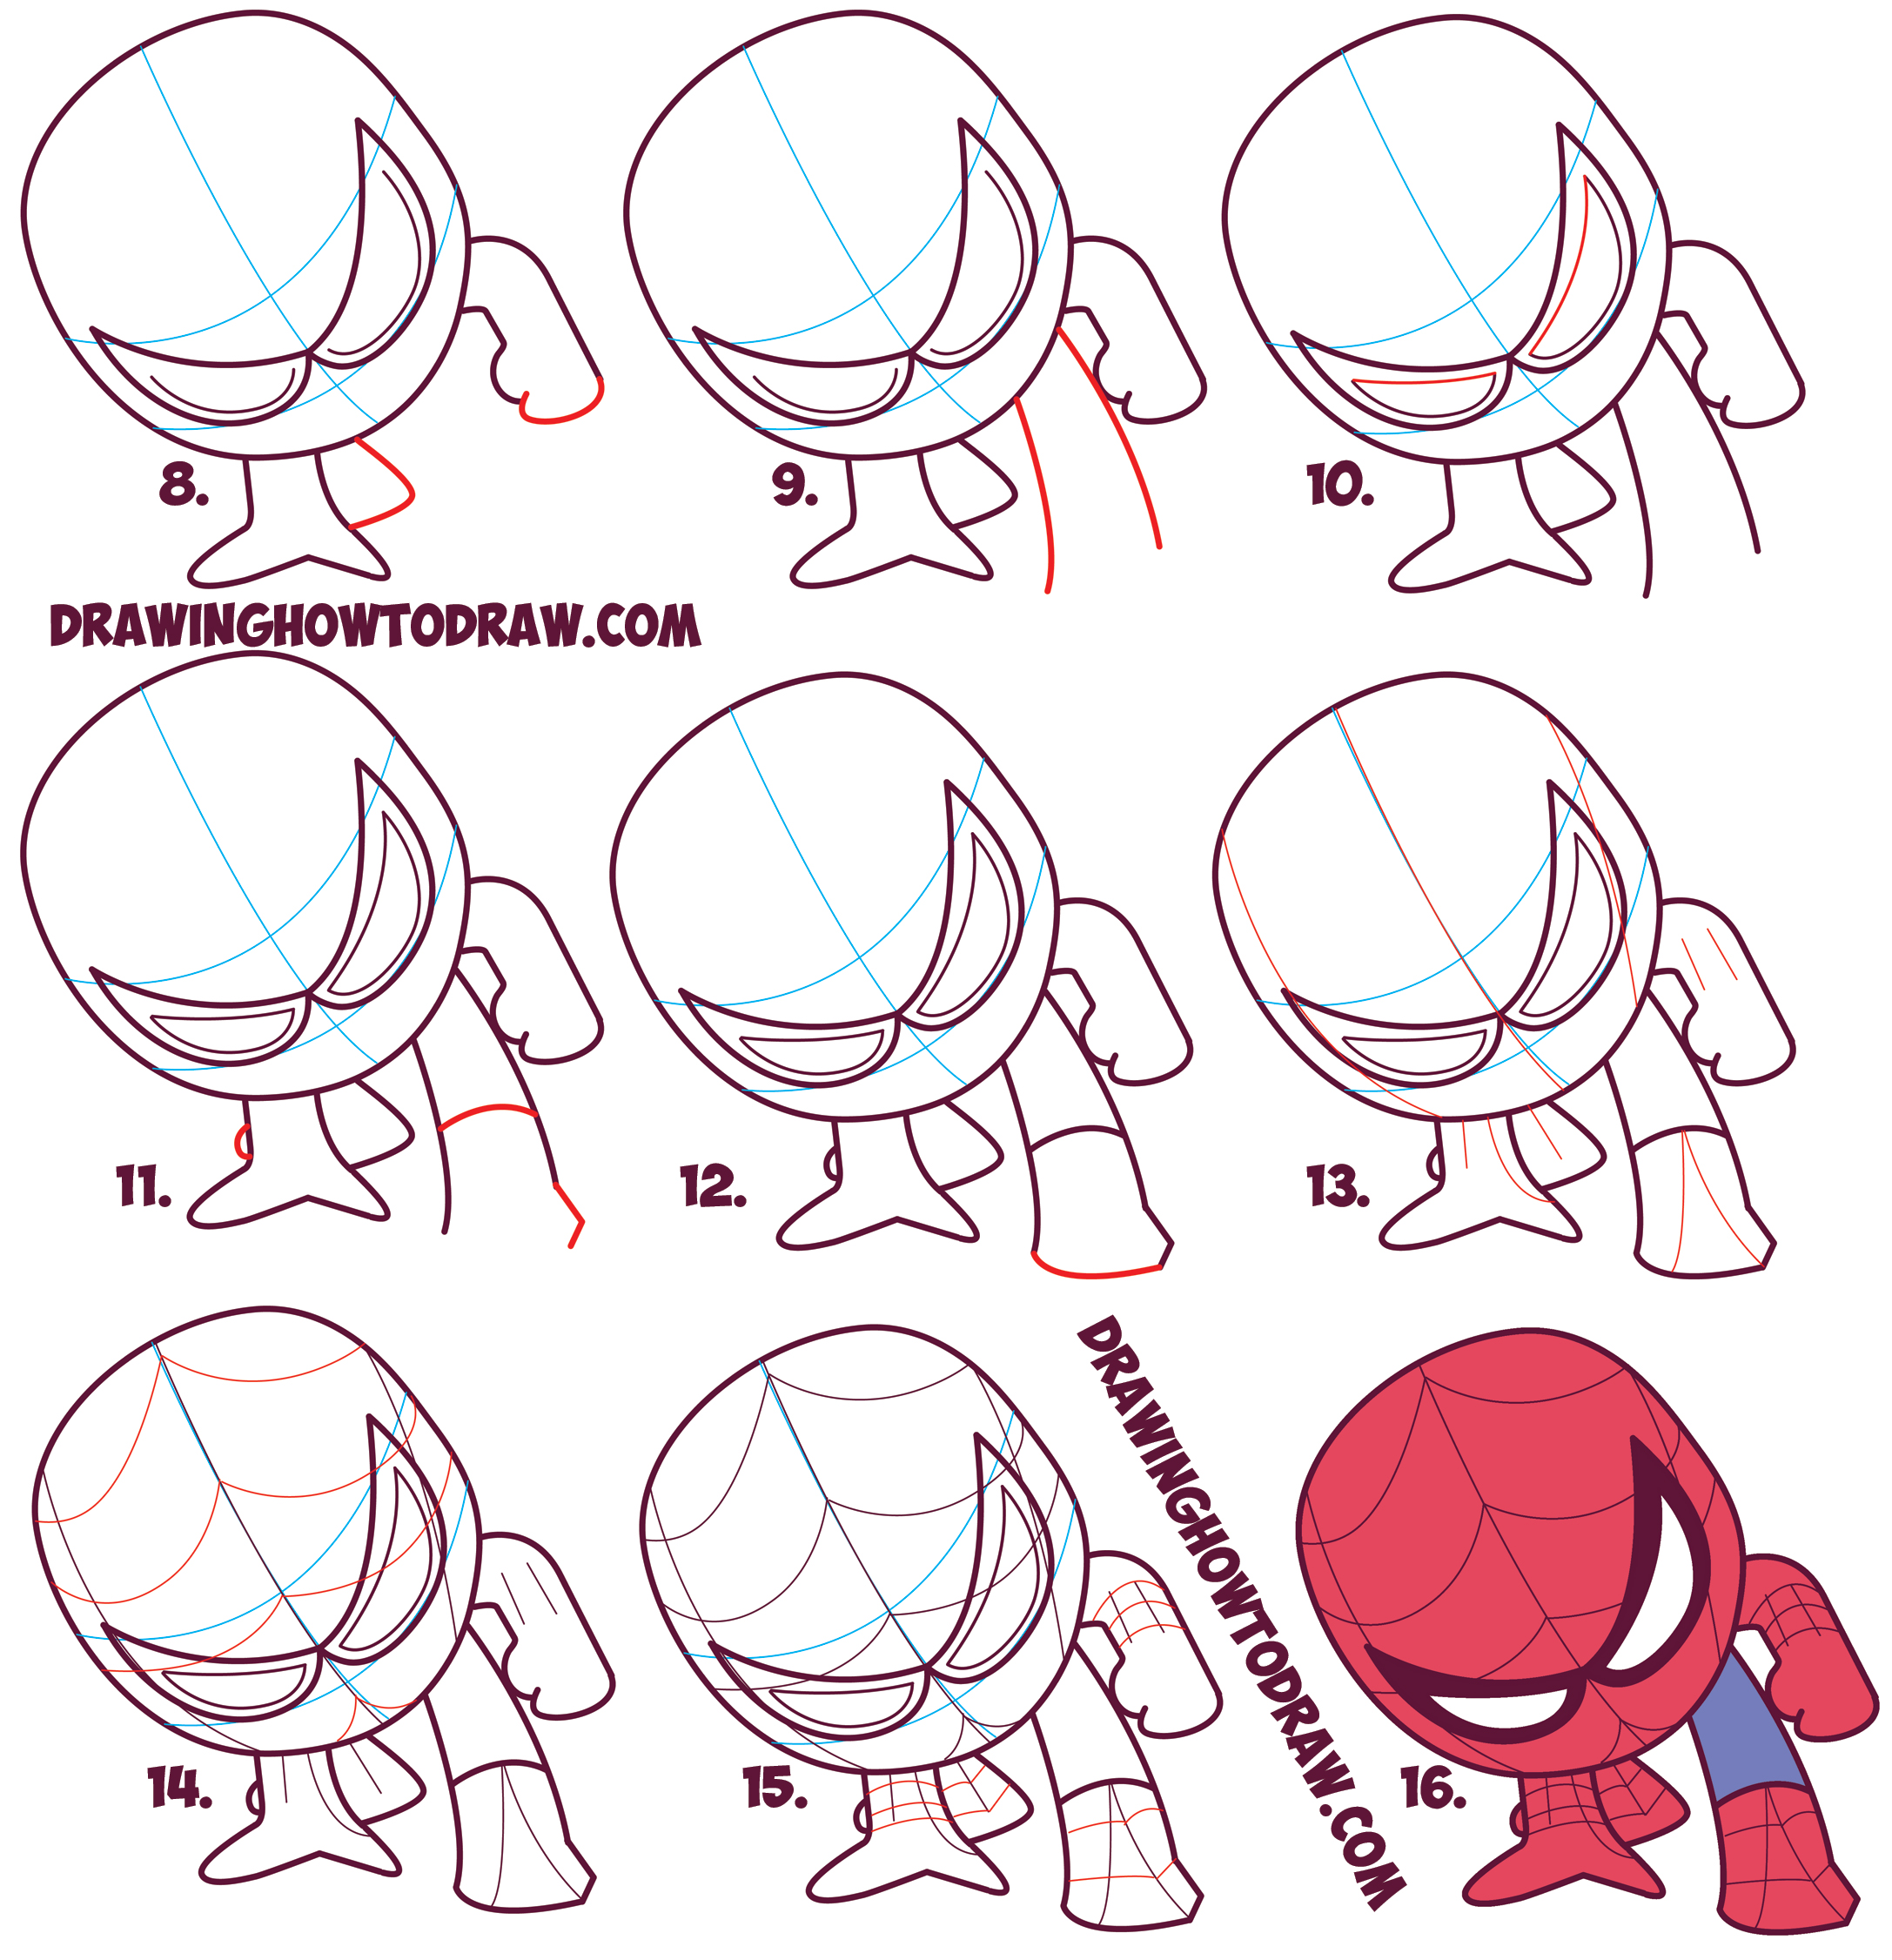 How to draw cute spiderman chibi kawaii easy step by for How to make cartoon drawings step by step